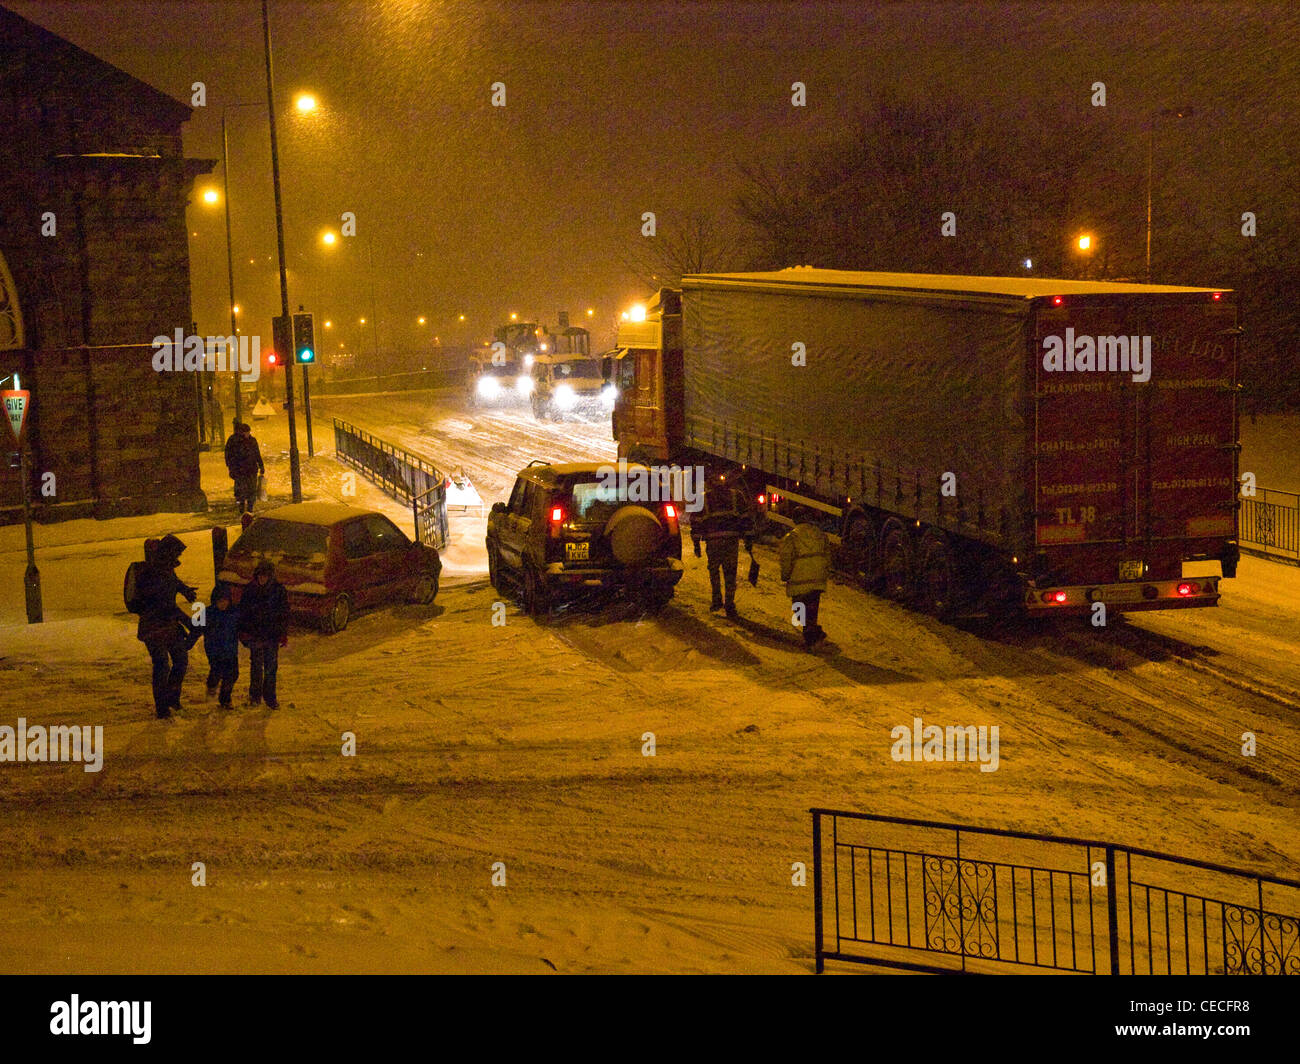 HGV struggling in snow causing traffic problems in Buxton, Derbyshire - Stock Image